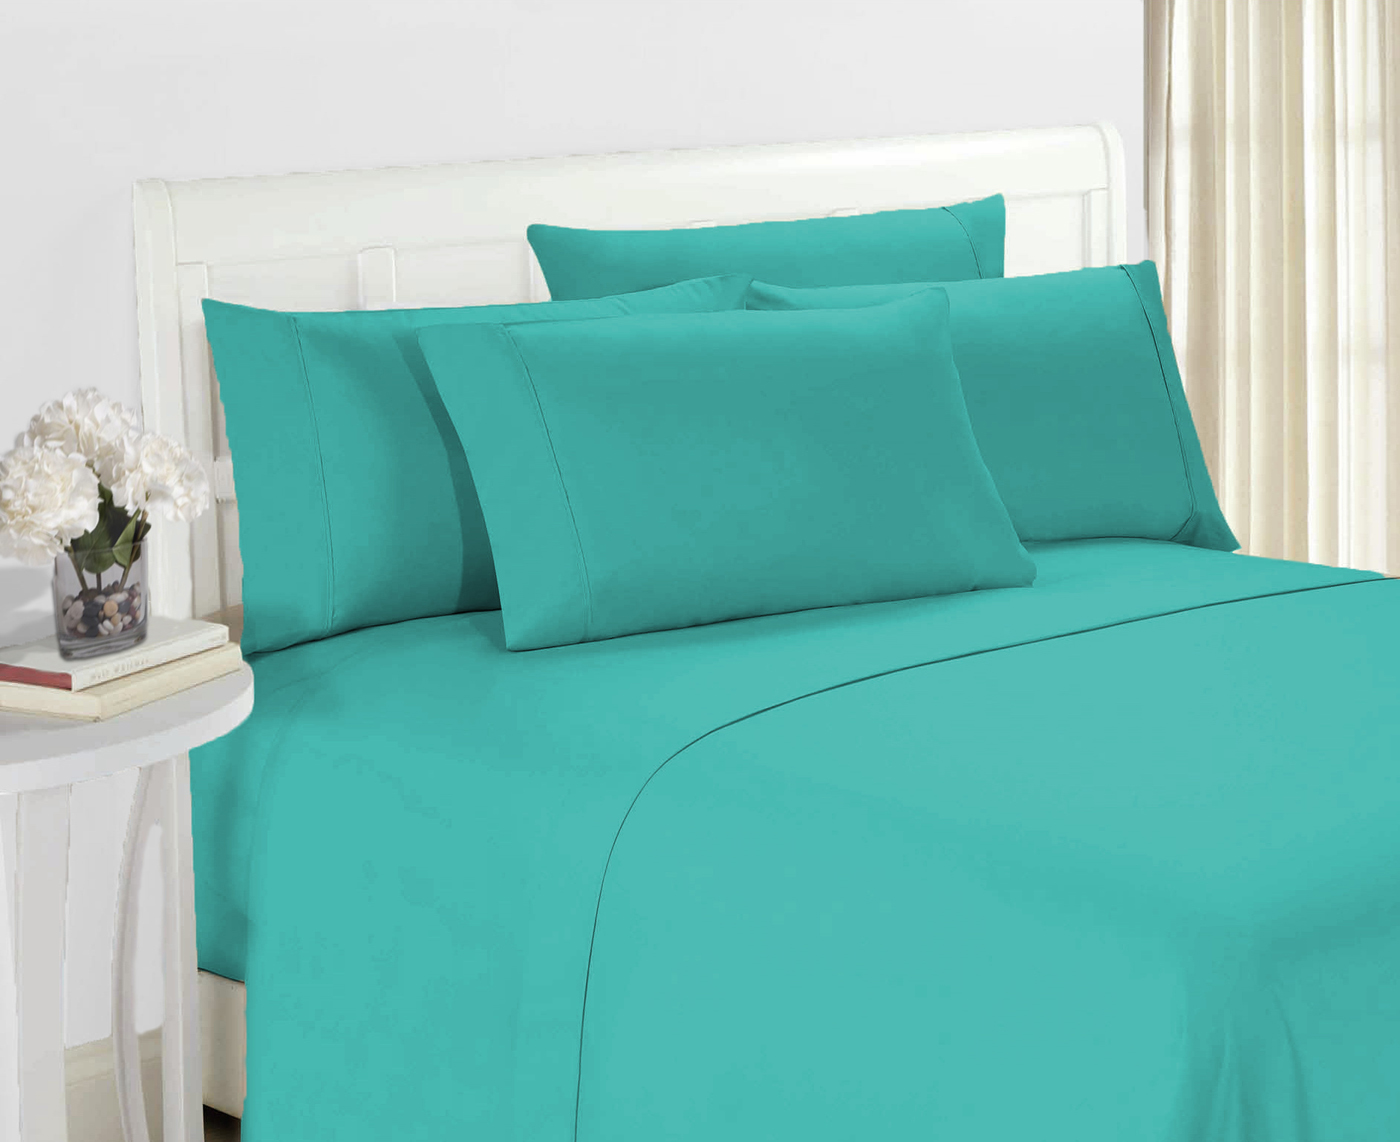 Hotel Super Soft 6 Piece Bed Sheet Set Deep Pockets Bedding   All Colors  Sizes